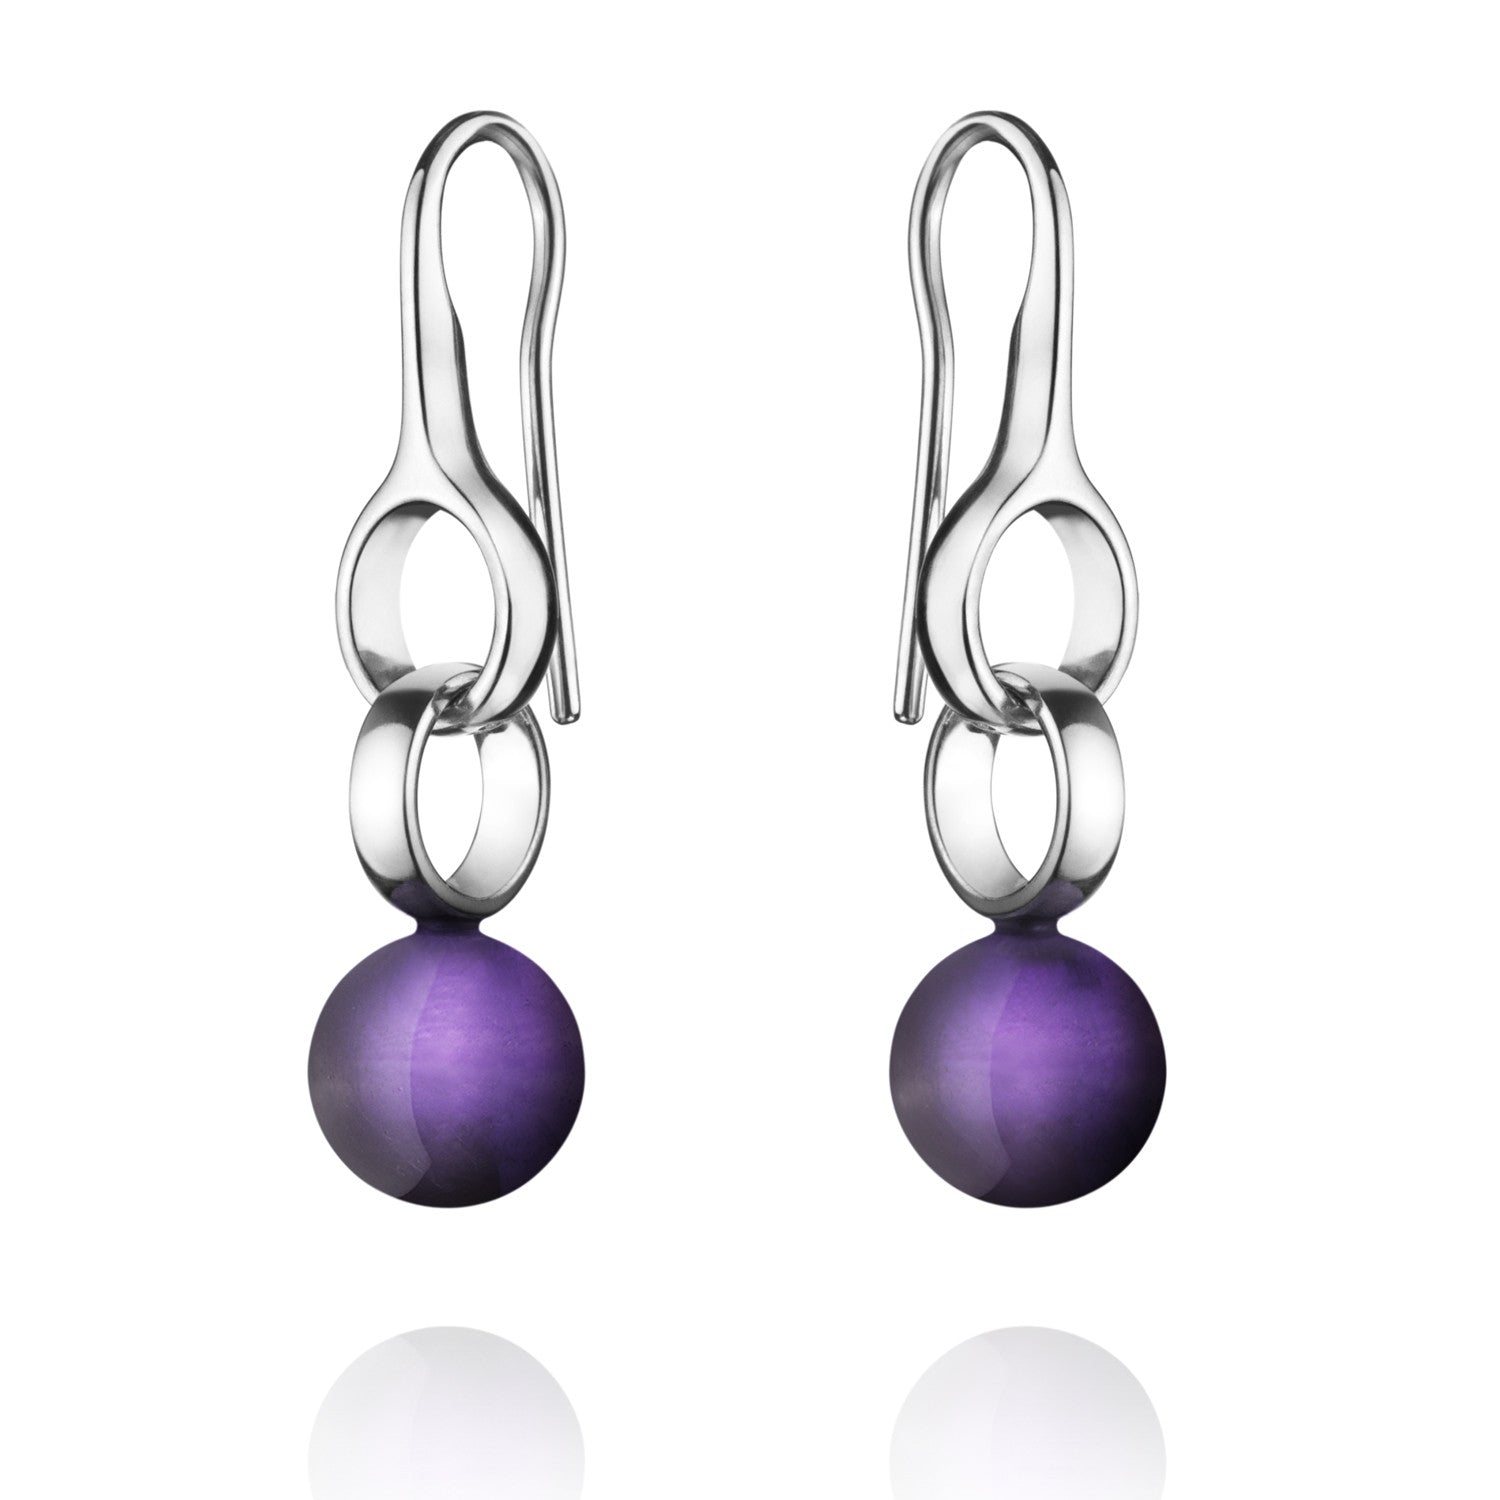 Georg Jensen Earrings Sphere Amethyst